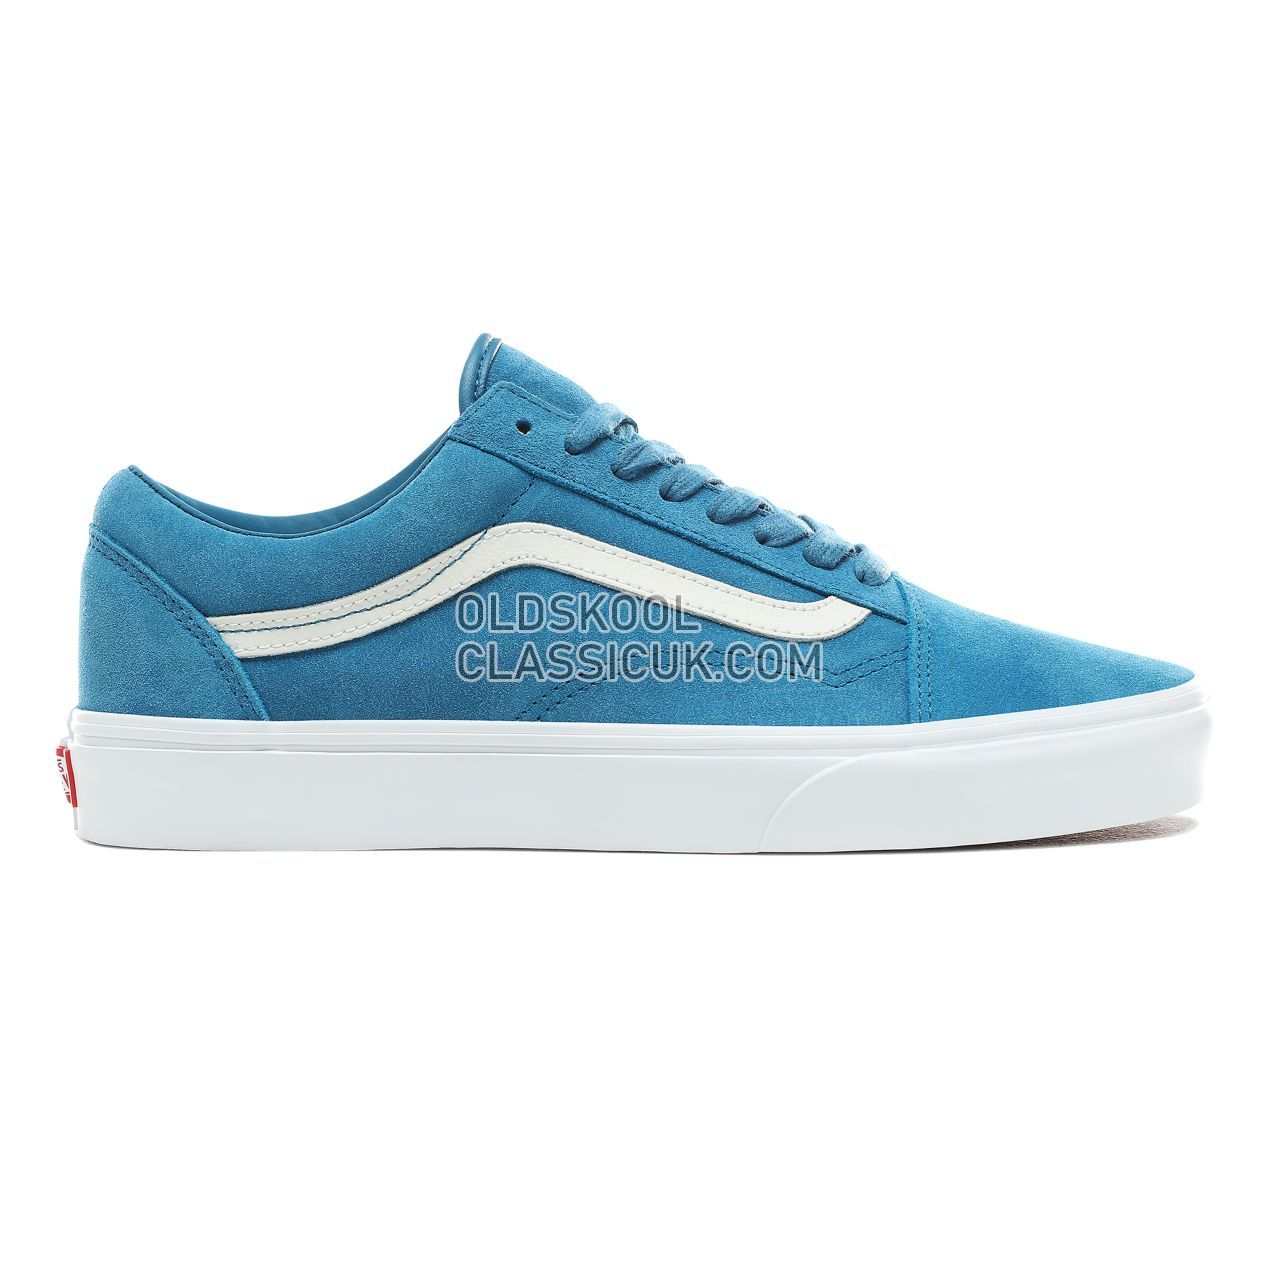 Vans Soft Suede Old Skool Sneakers Mens Womens Unisex (Soft Suede) Blue Sapphire/True White VN0A38G1VKD Shoes